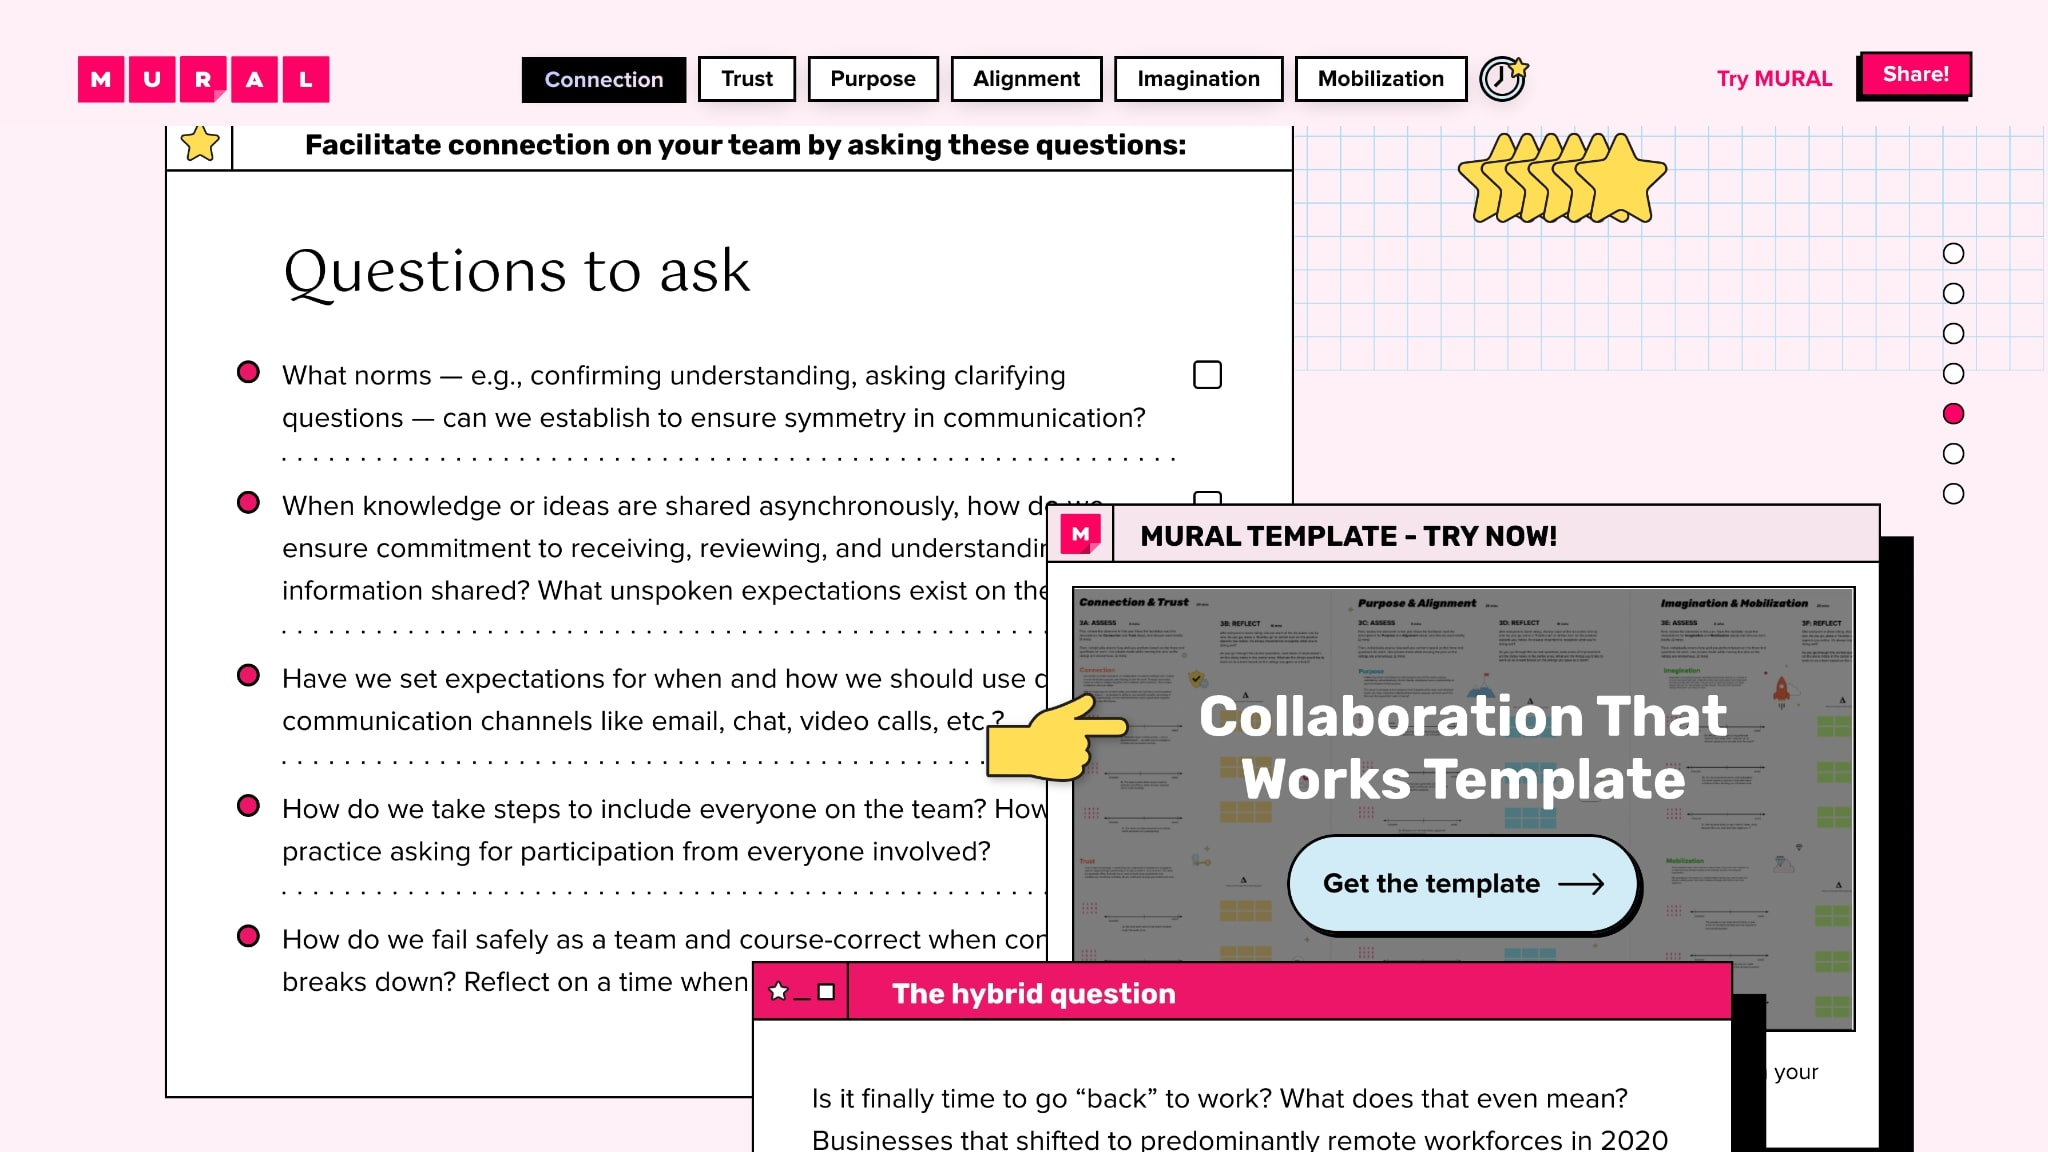 An image of MURAL's interactive landing page about collaboration.